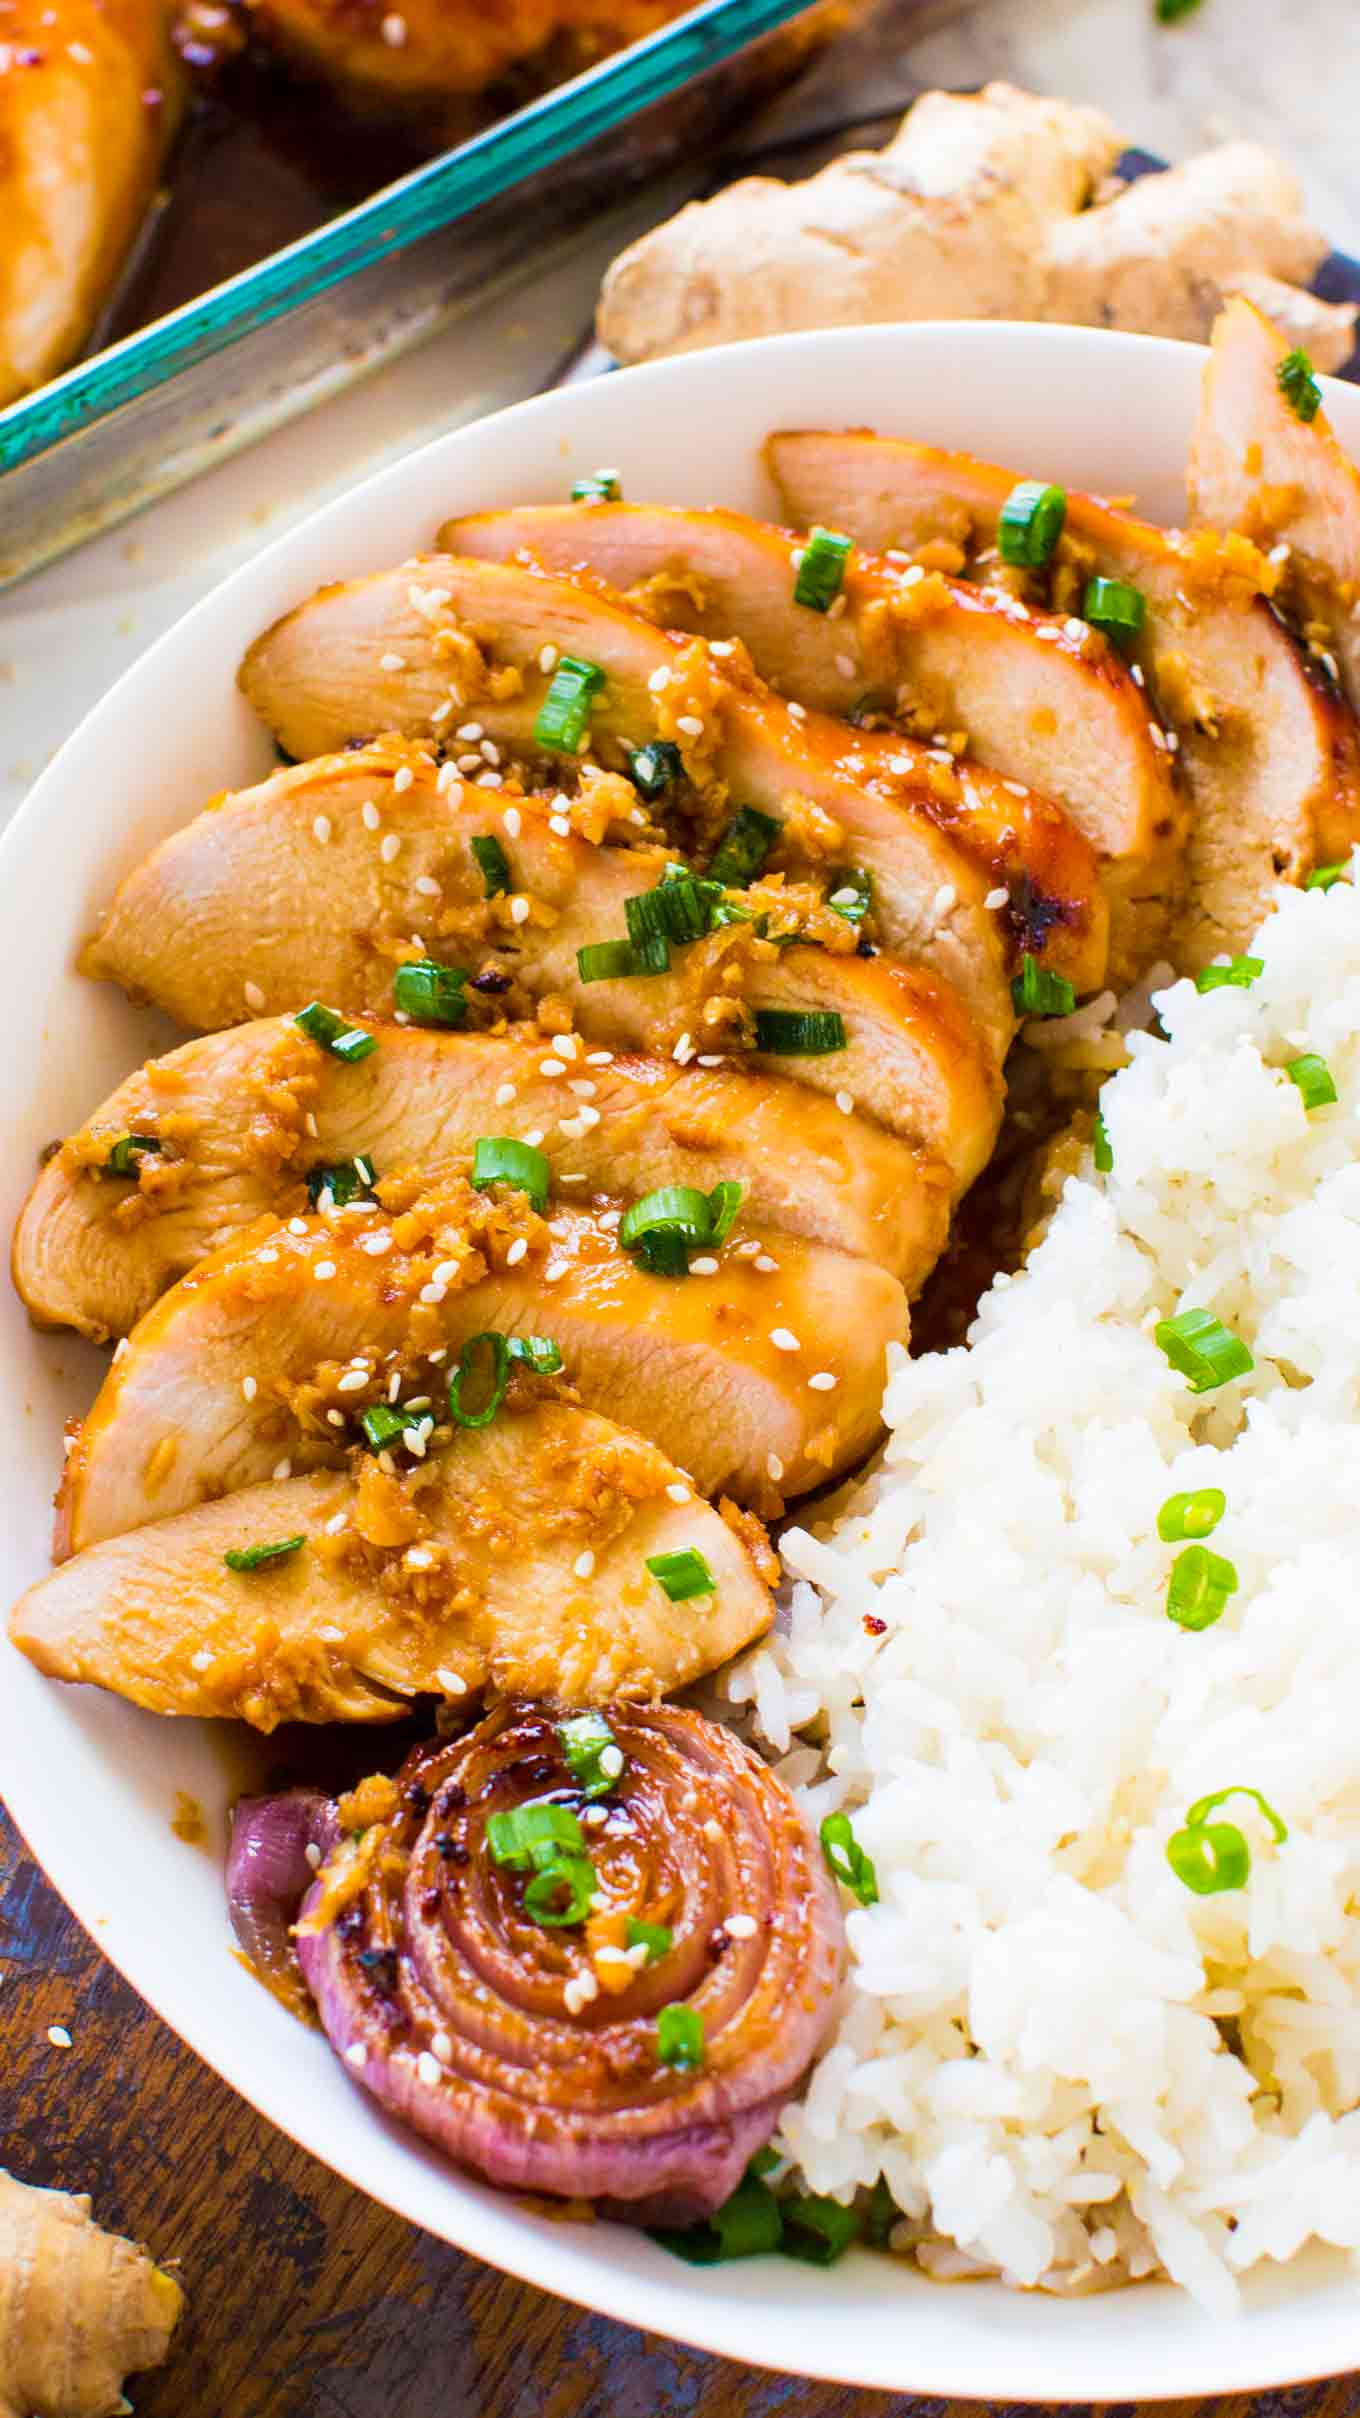 Baked Mongolian Chicken One Pan Sweet And Savory Meals